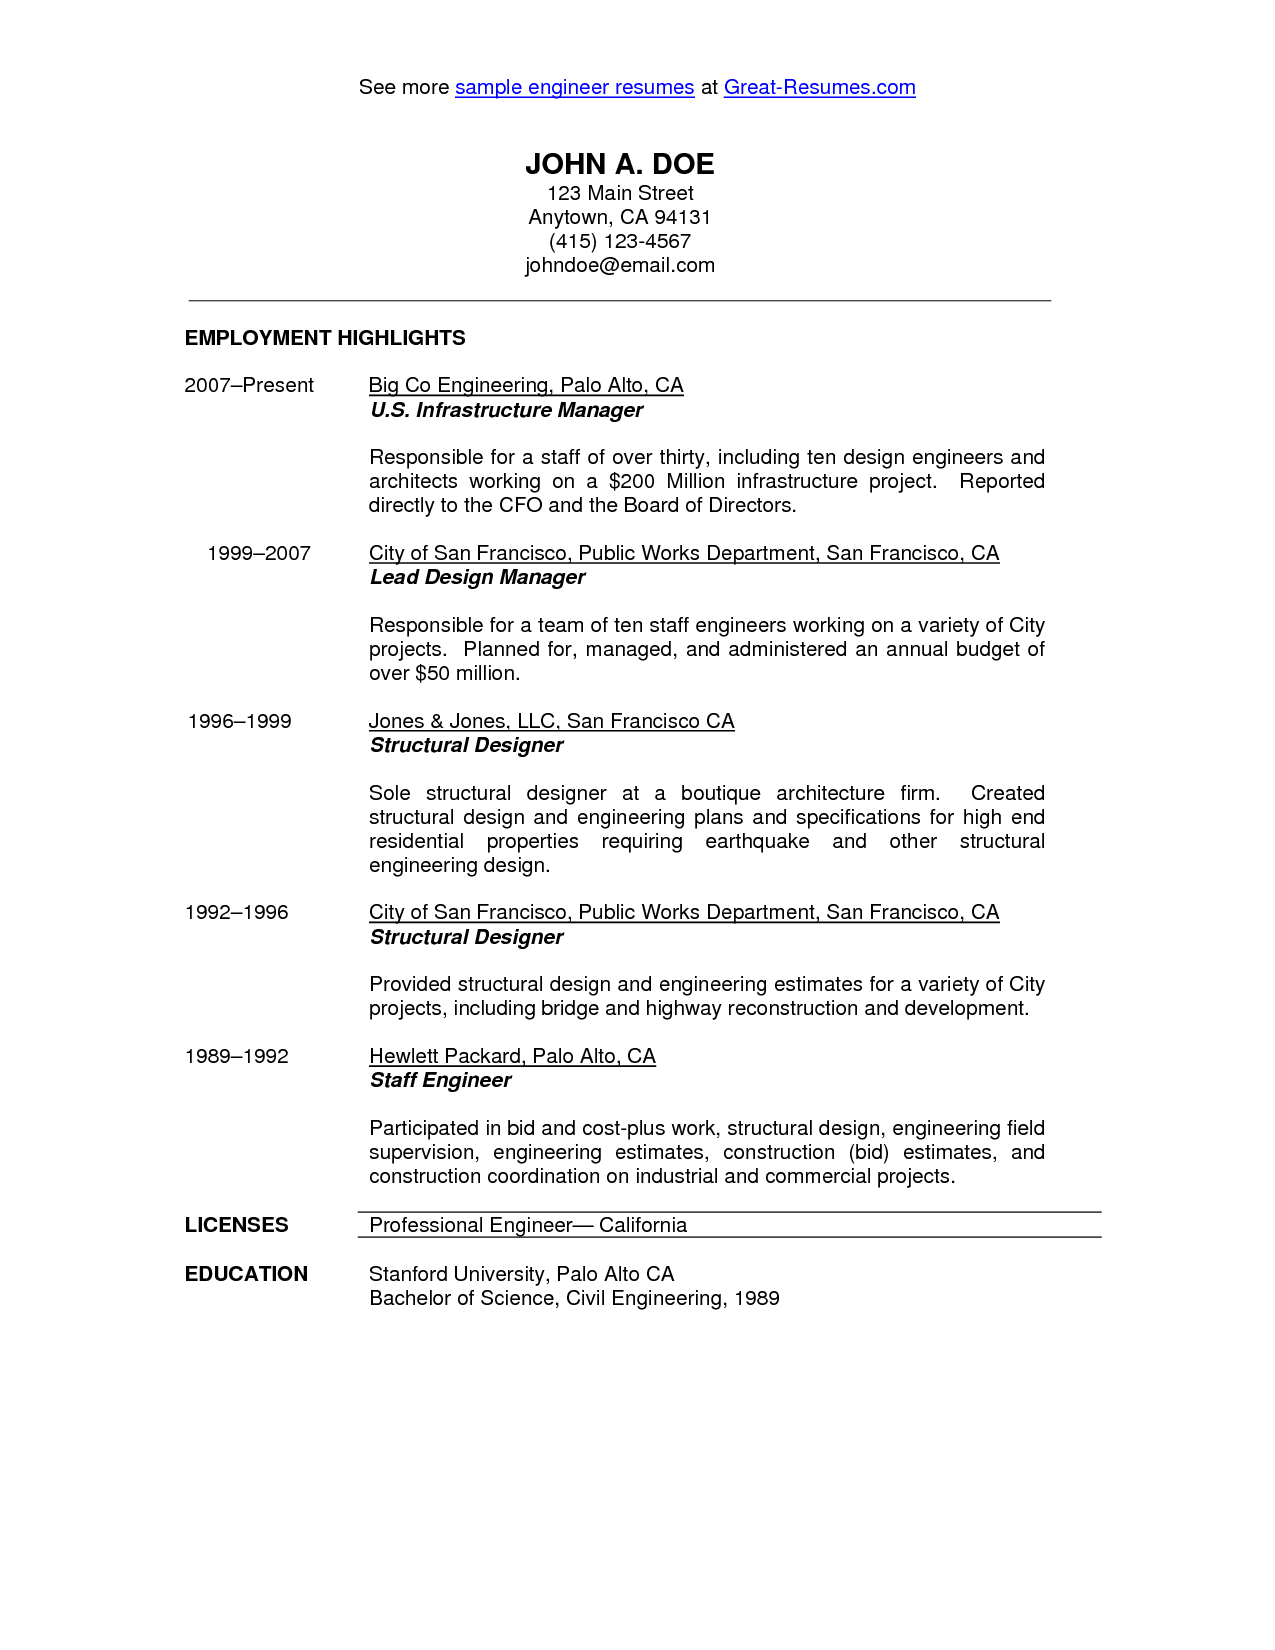 Civil Engineer Resume Sample - http://www.resumecareer.info/civil ...